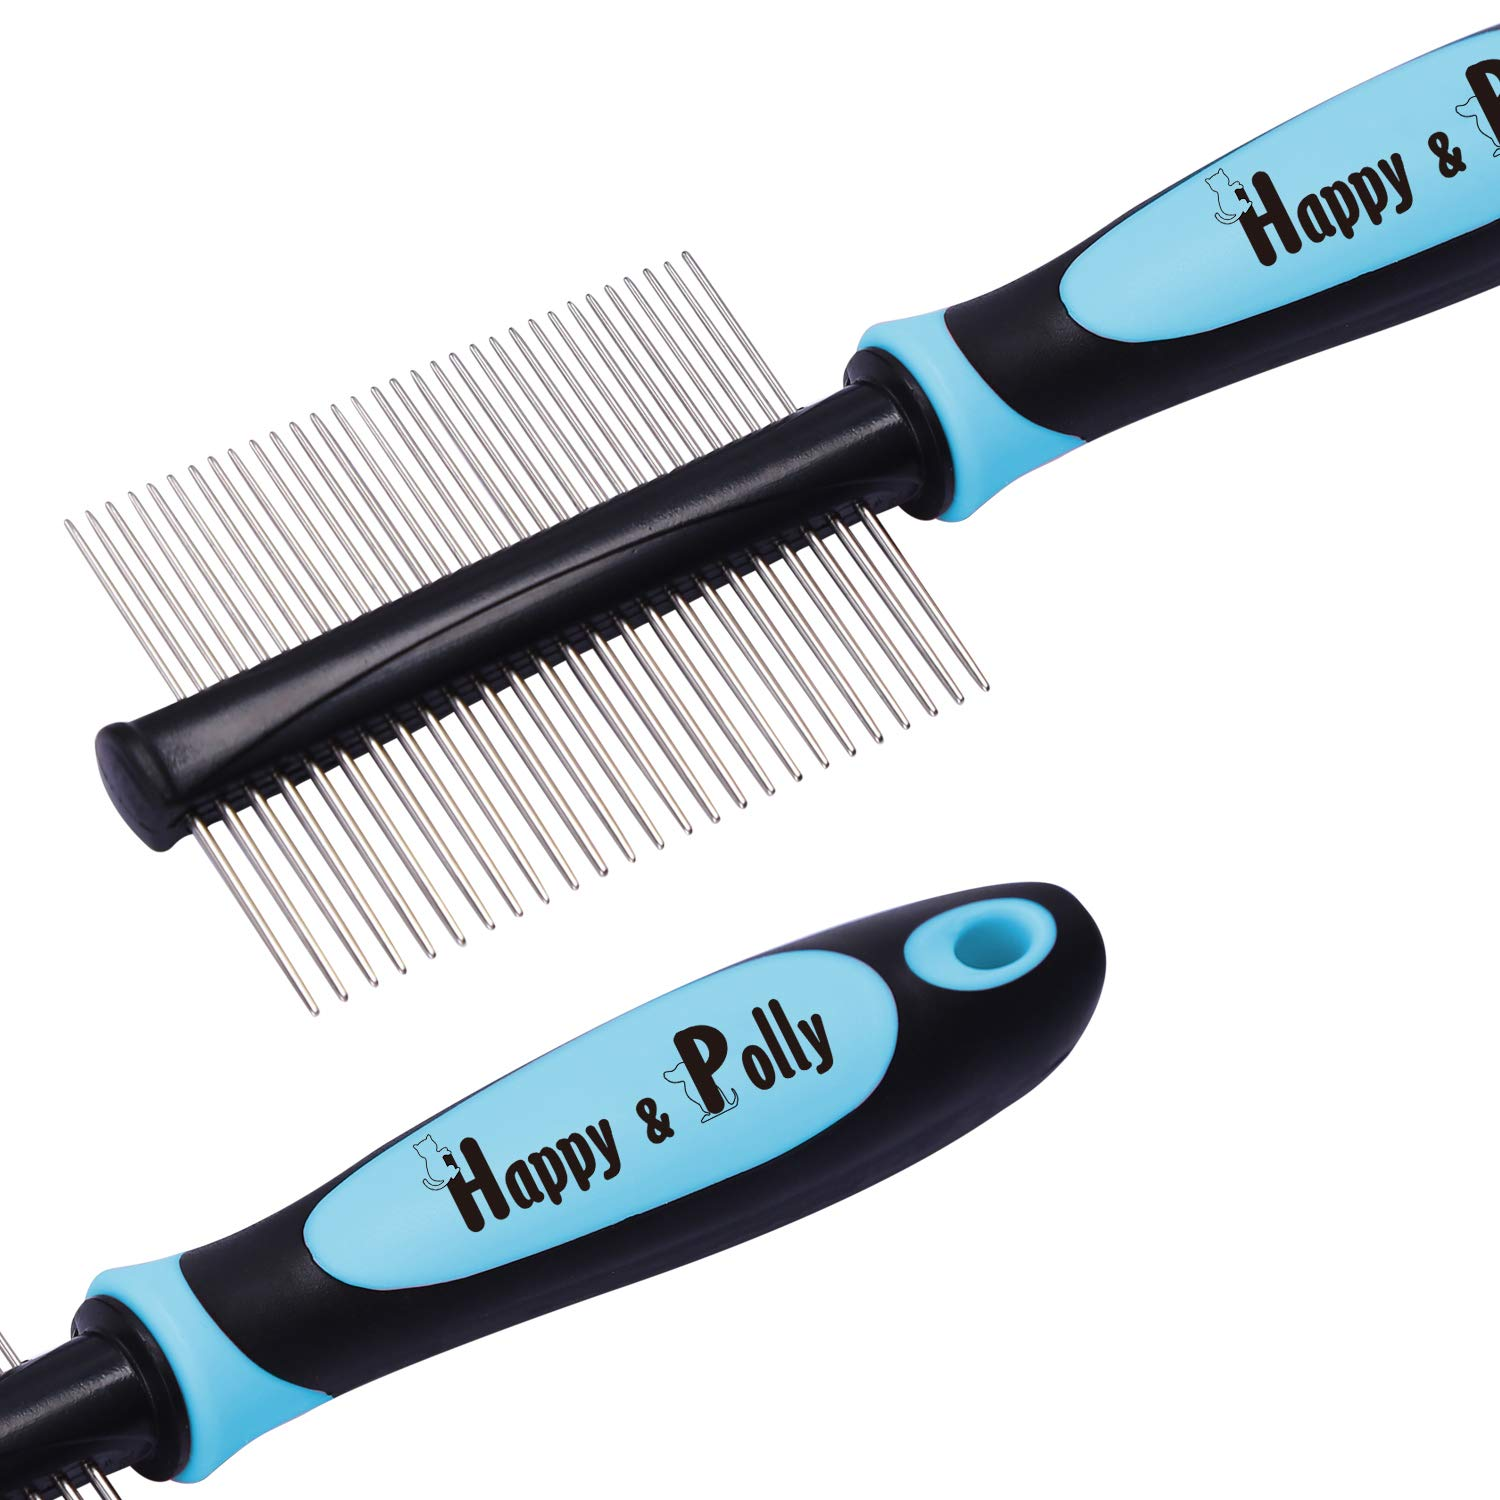 Knots and Tangles for Dogs Cats with Long Short Hair Happy /& Polly Pet Comb Grooming Brush Stainless Steel Deshedding Comb//Deshedding Brush//Dematting Rake Removing Pets Matted Fur